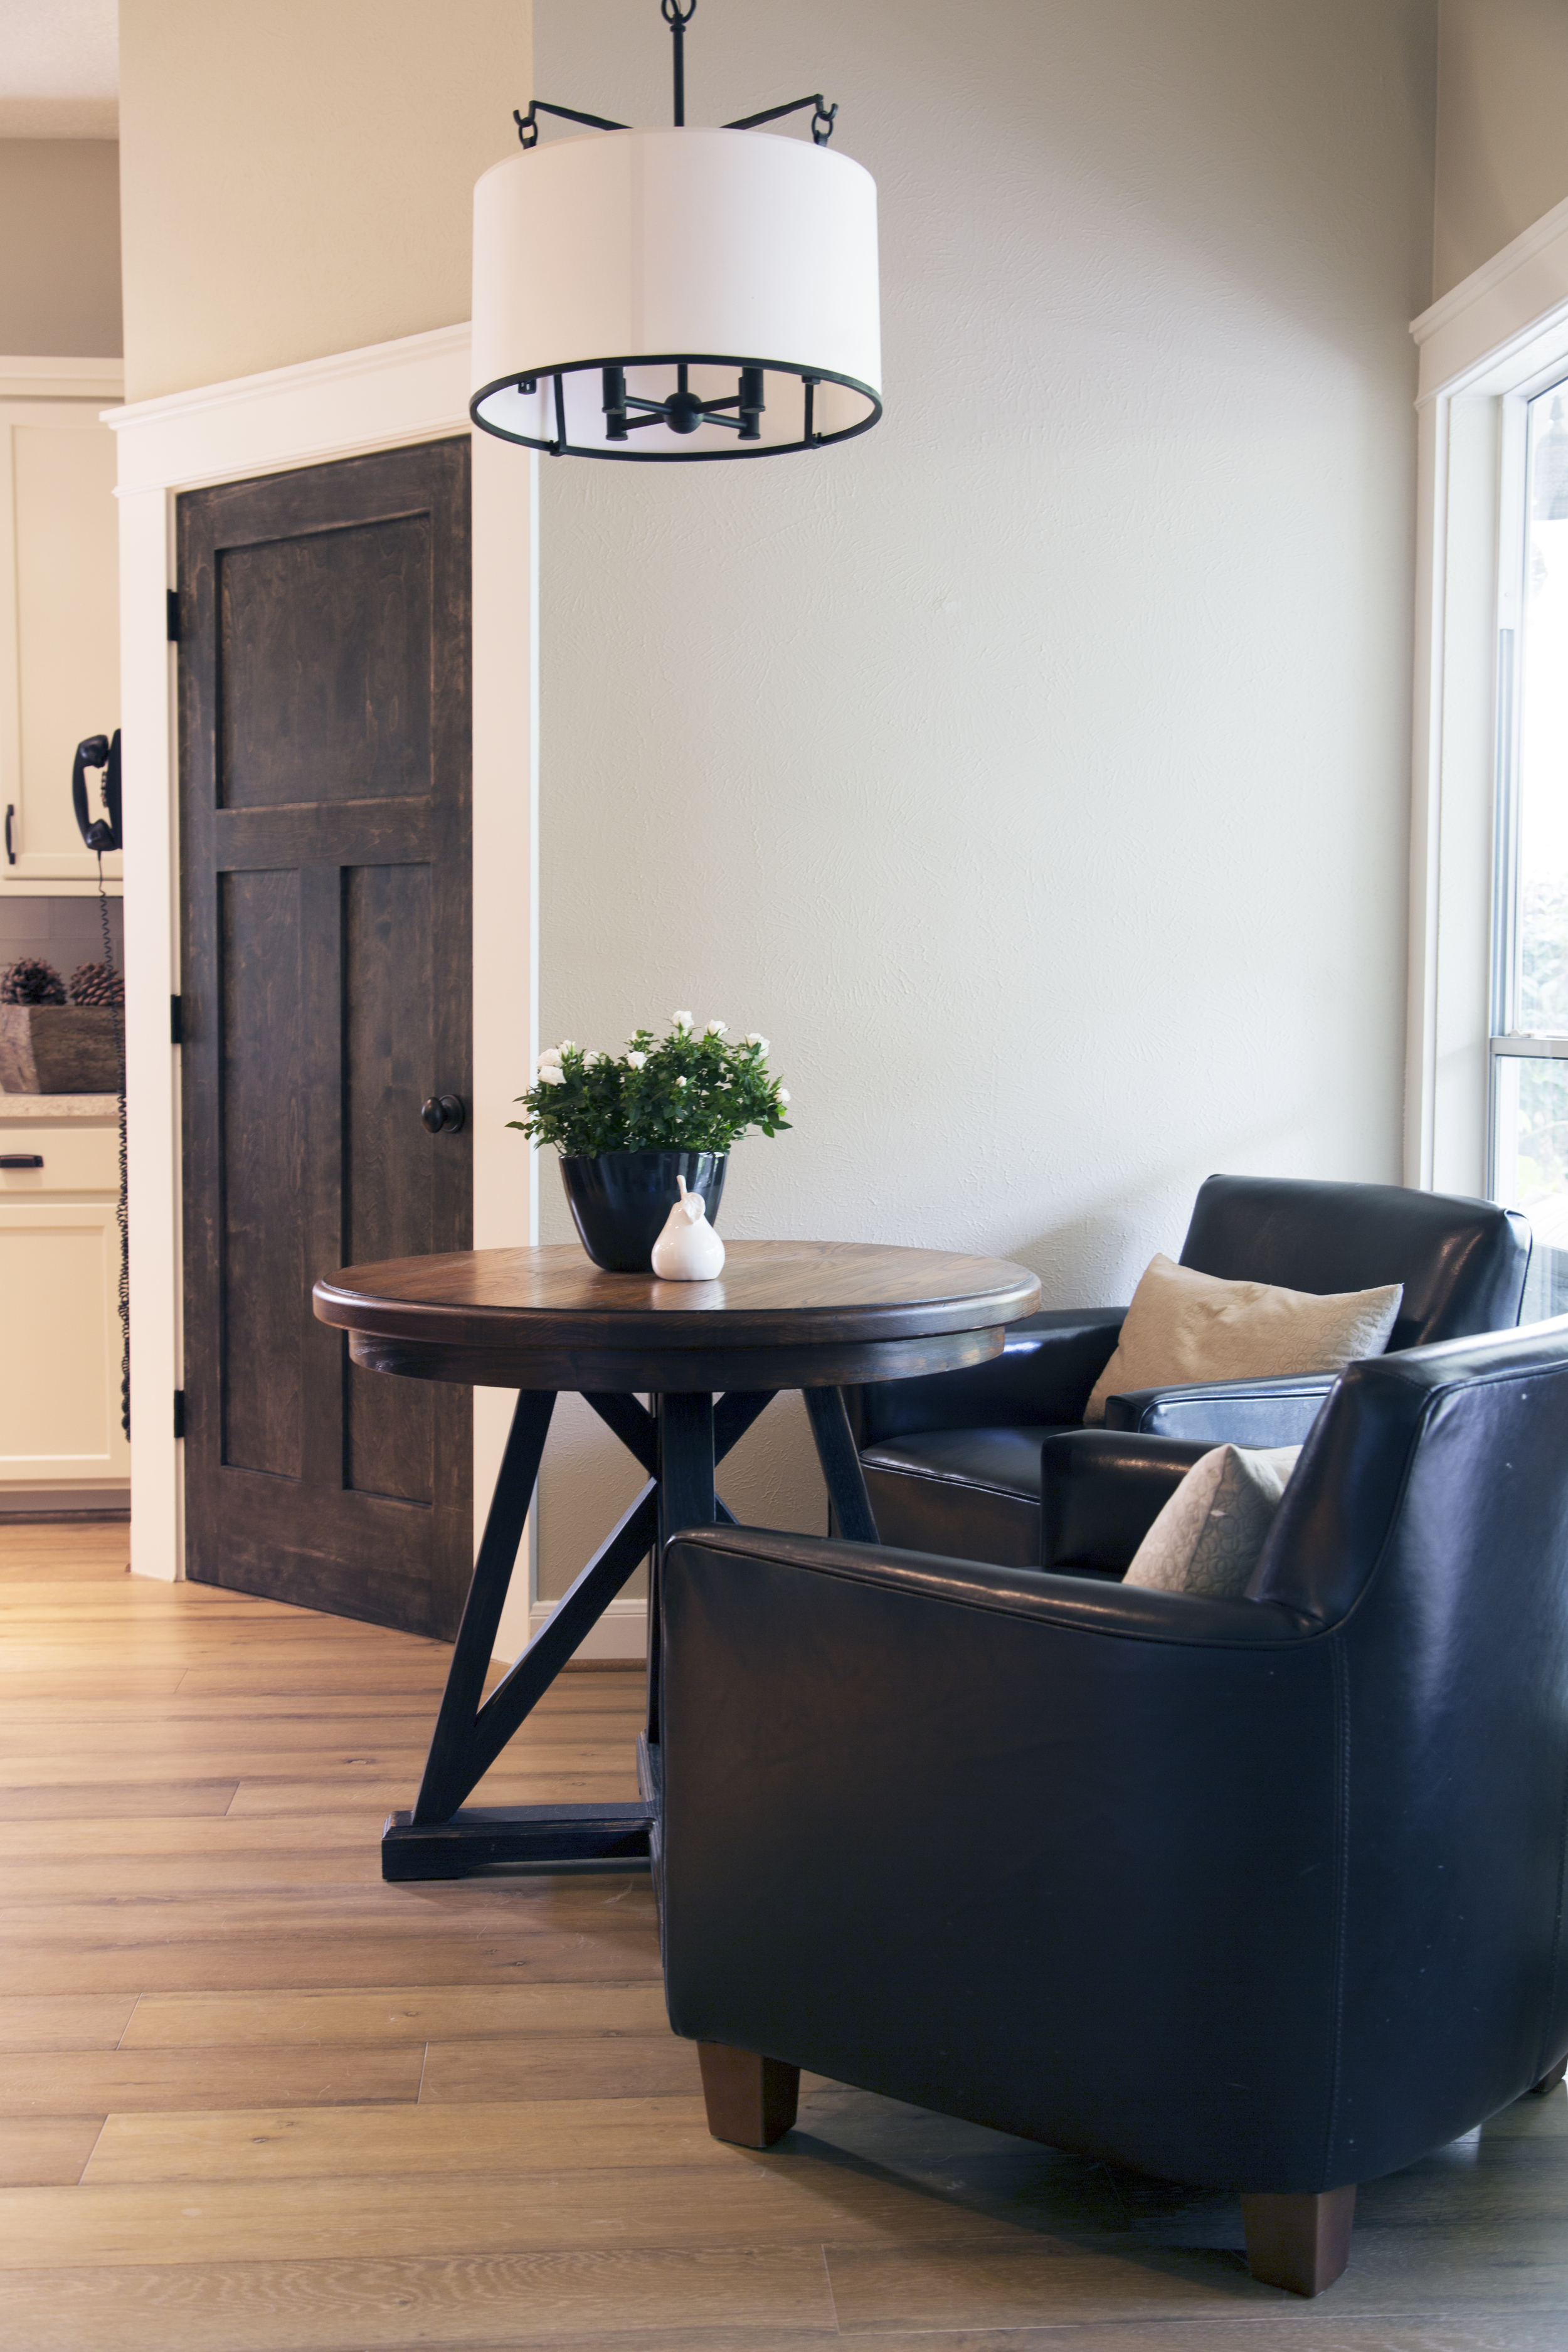 Interior design -ed by Carla Aston, interior designer / Photography by Tori Aston | Home kitchen renovation-remodel-makeover; rustic, coffee house style; leather chair; wood floor; table.